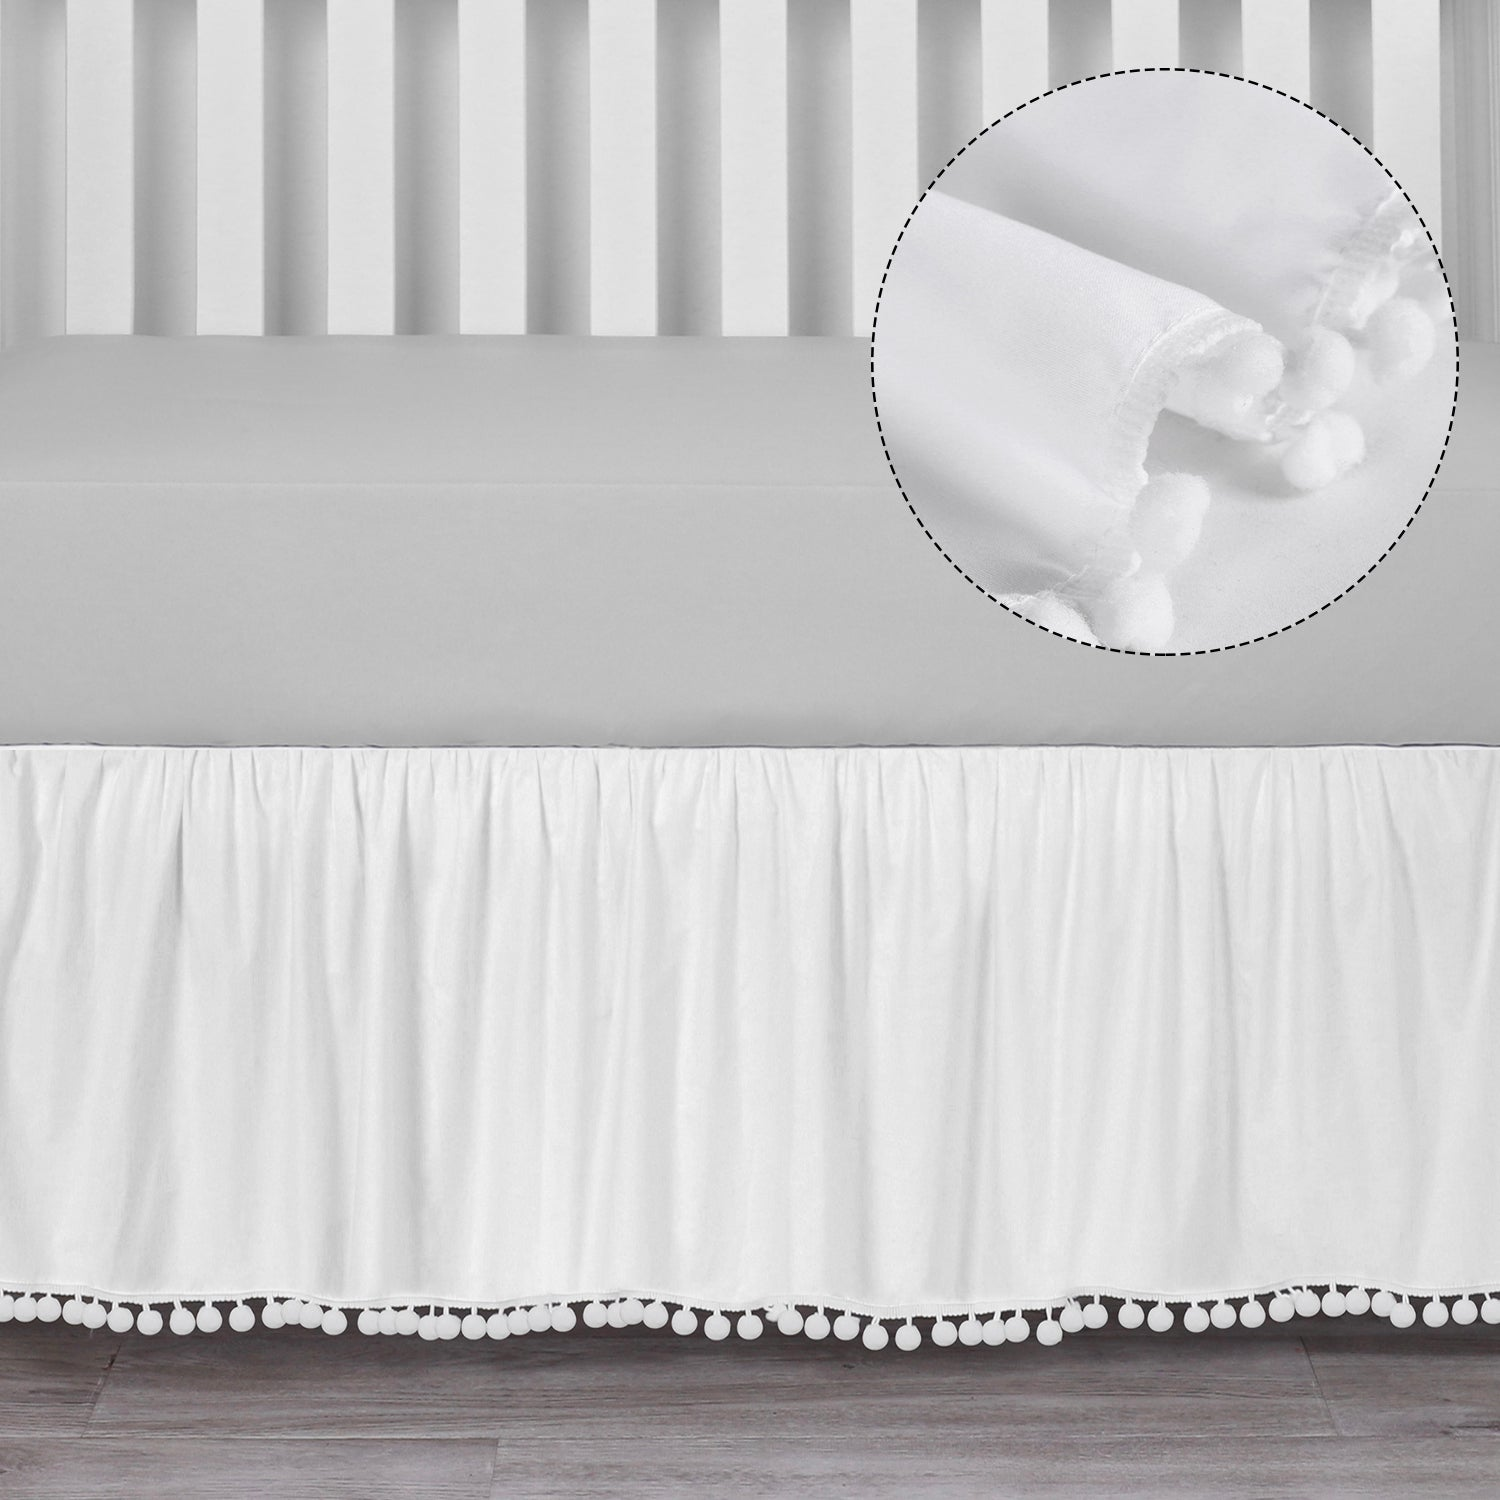 Microfiber Ruffled Crib Skirt with Pompoms - White